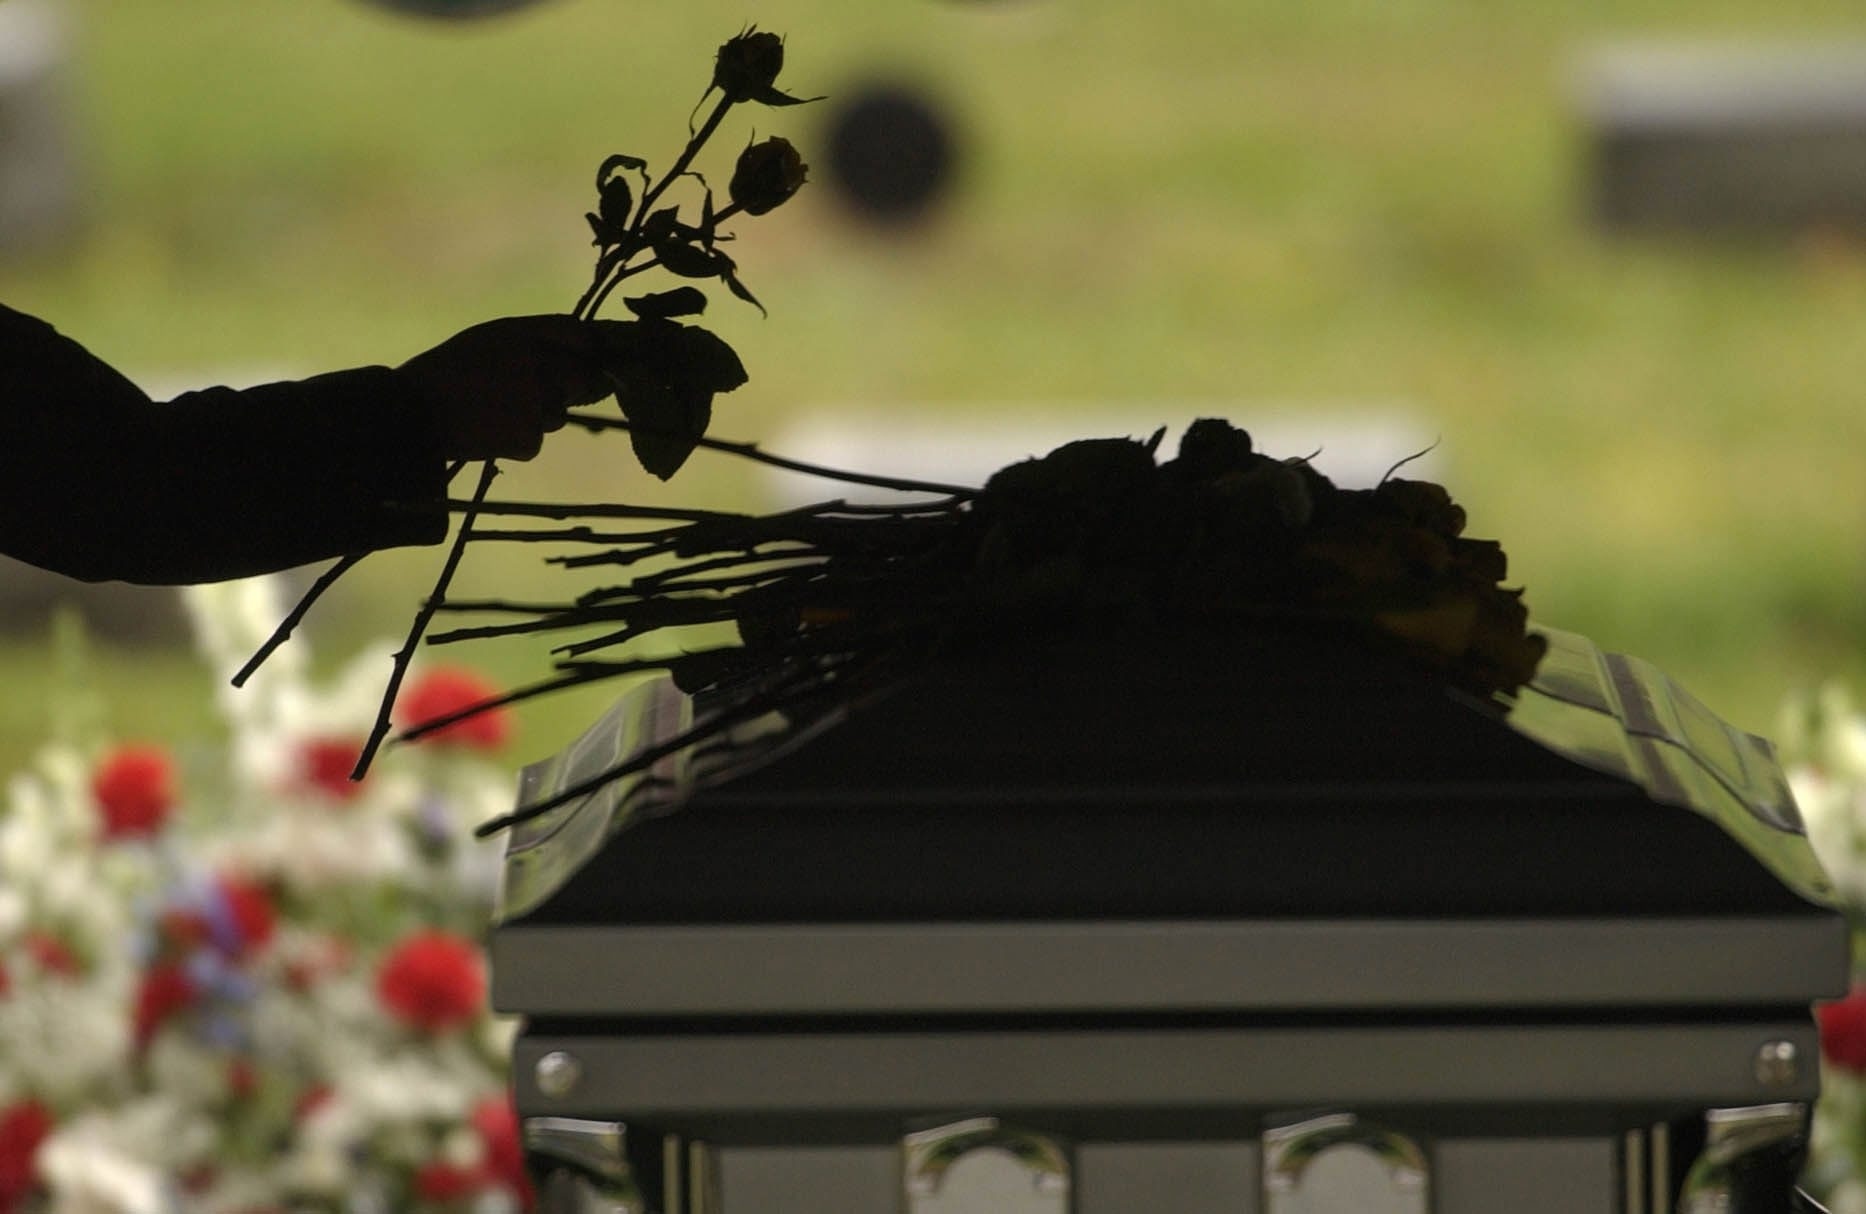 Taking steps now to plan for your death can provide direction for end-of-life decisions and leave guidance for your heirs on the type of funeral services you'd prefer. All of that lifts a big emotional burden from families and loved ones.